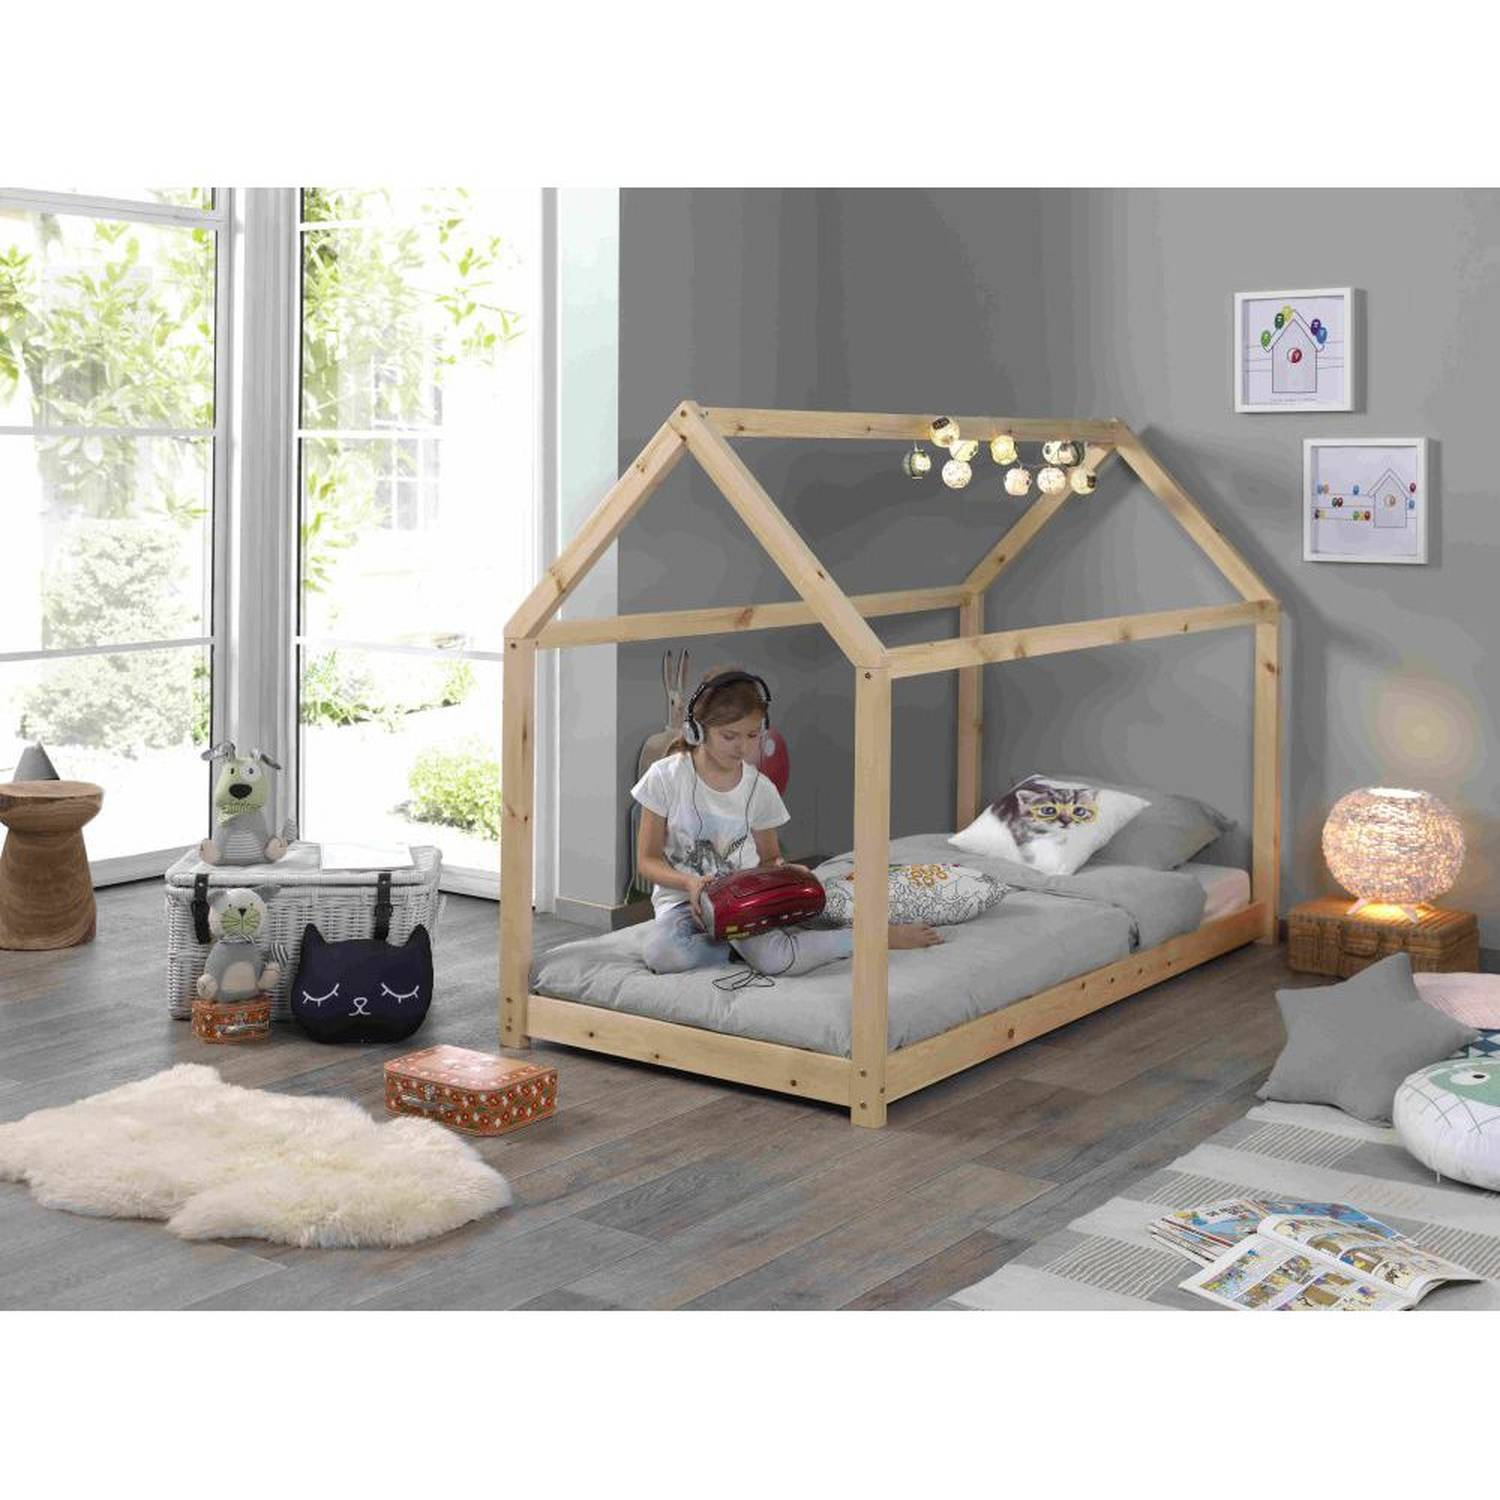 Childs Single Bed Frame Cheaper Than Retail Price Buy Clothing Accessories And Lifestyle Products For Women Men